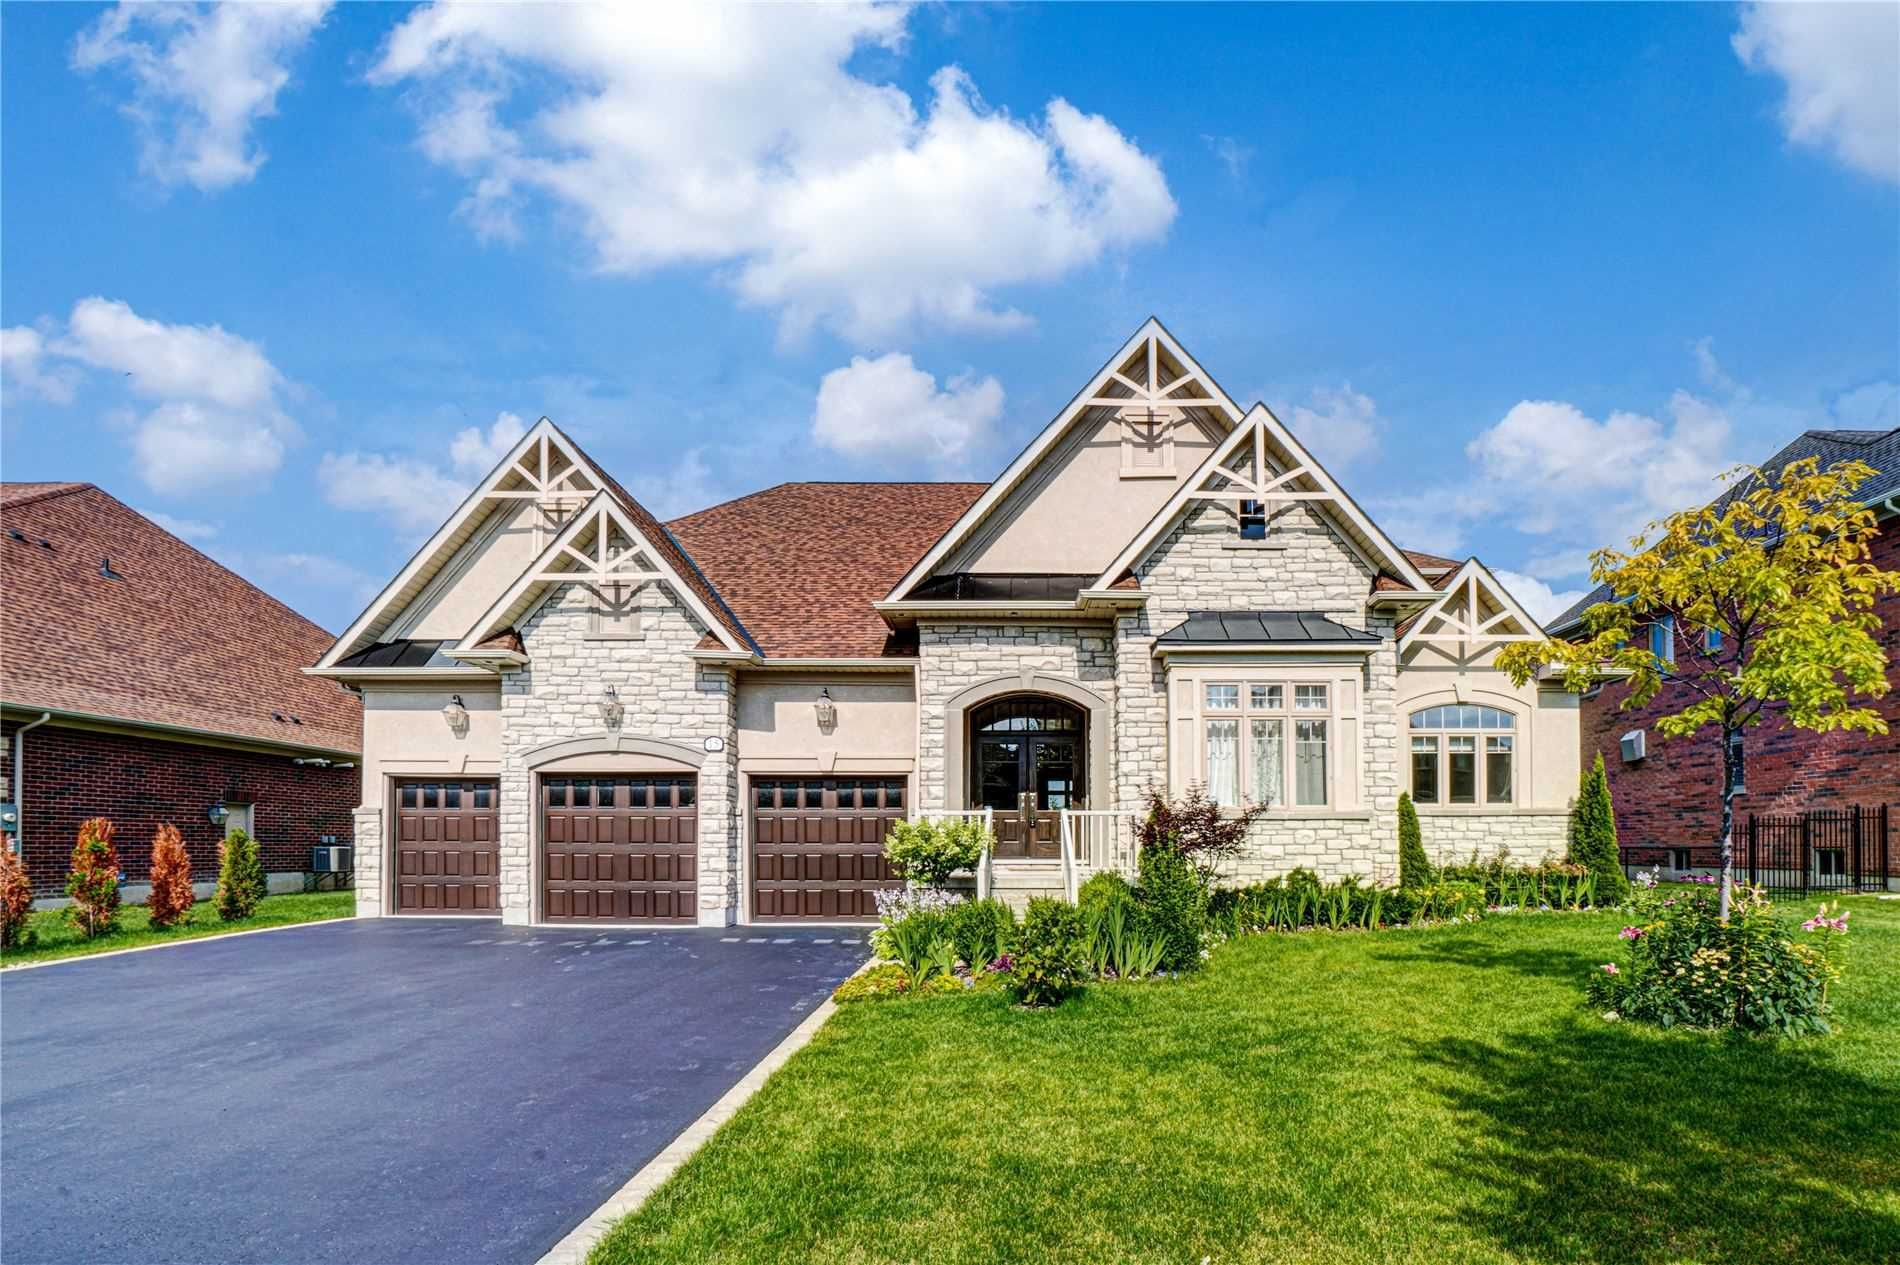 Main Photo: 15 Country Club Cres: Uxbridge Freehold for sale : MLS®# N5330230